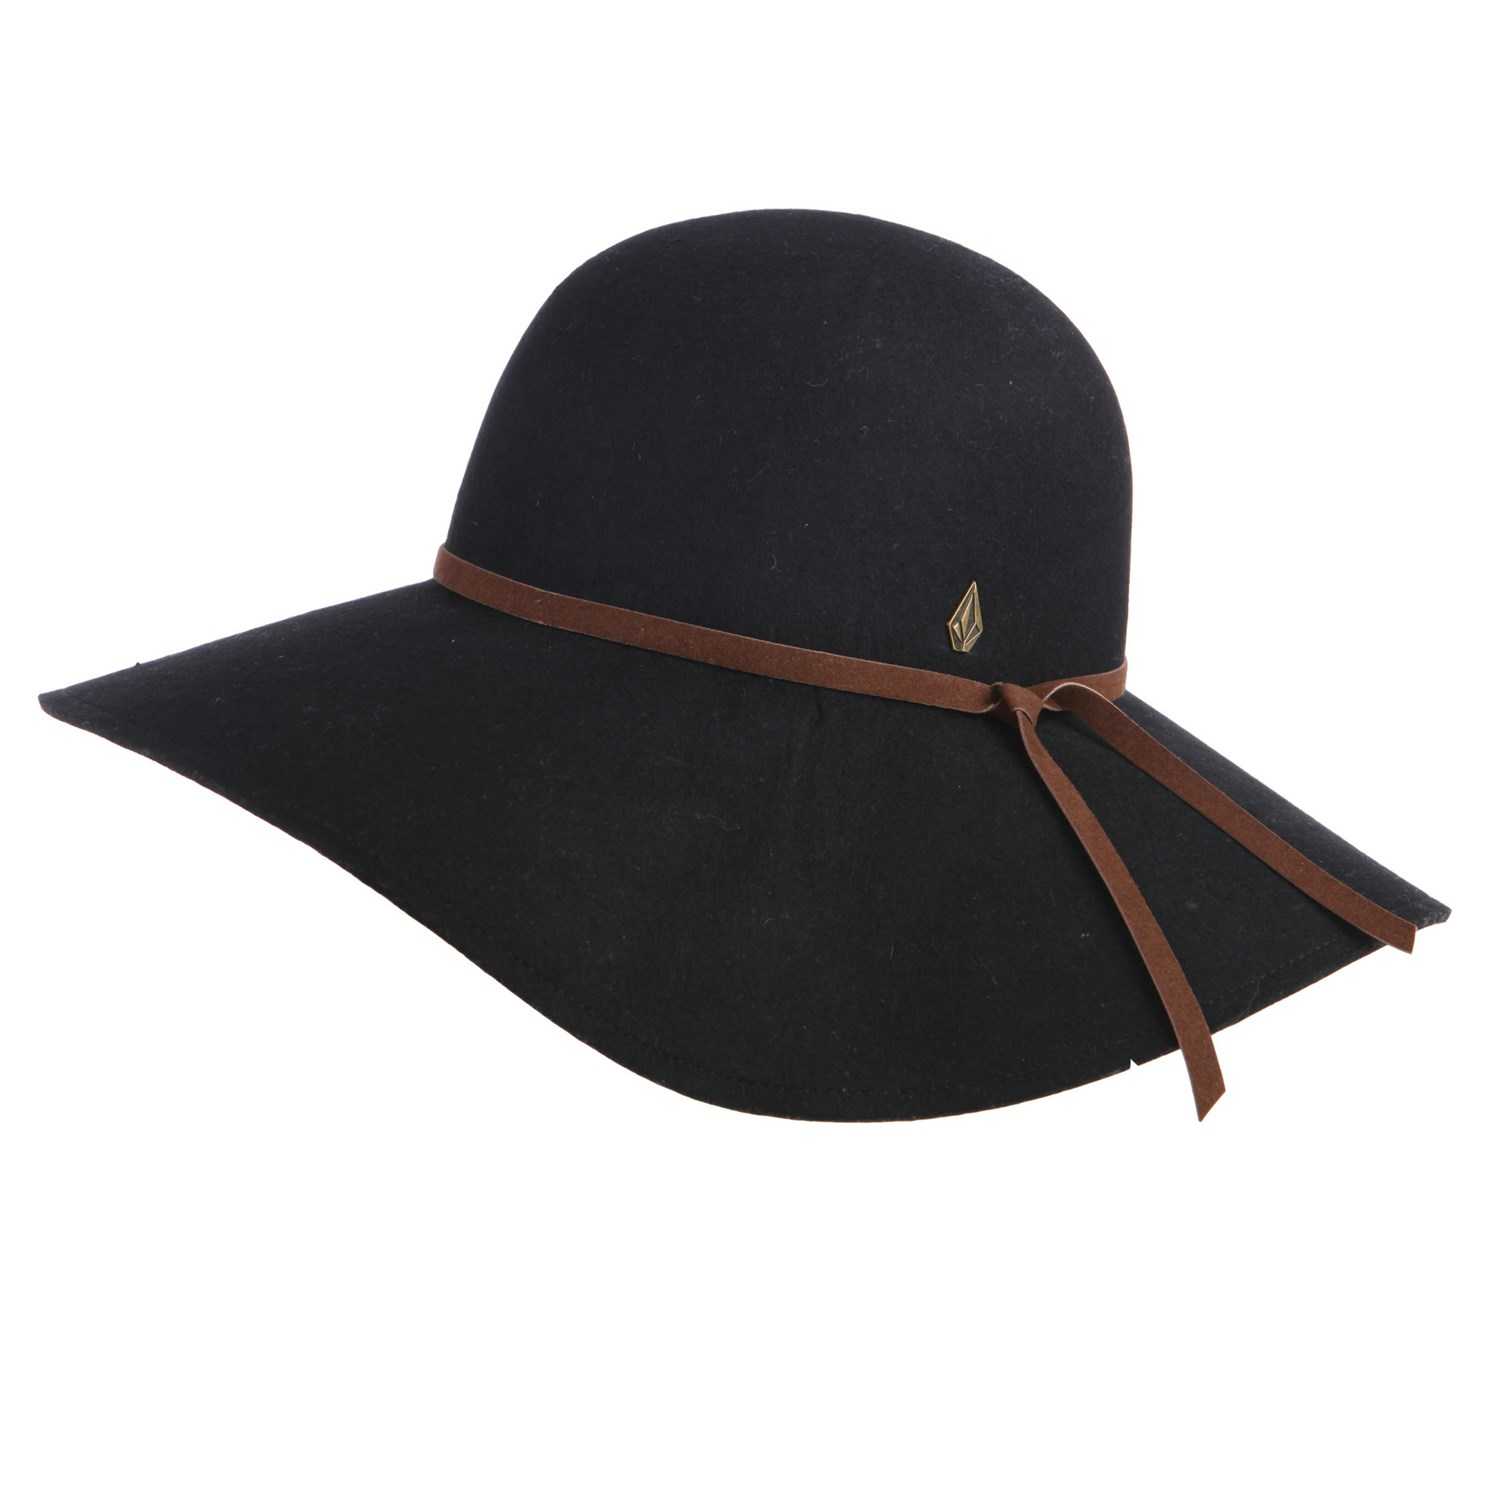 The average women's hat is made to fit a size medium head. This measures 57 cm, or inches. When you measure your head across, if you come out to a larger measurement than this number, you may find that many hats are tight on your head (if they are even fitting at all).